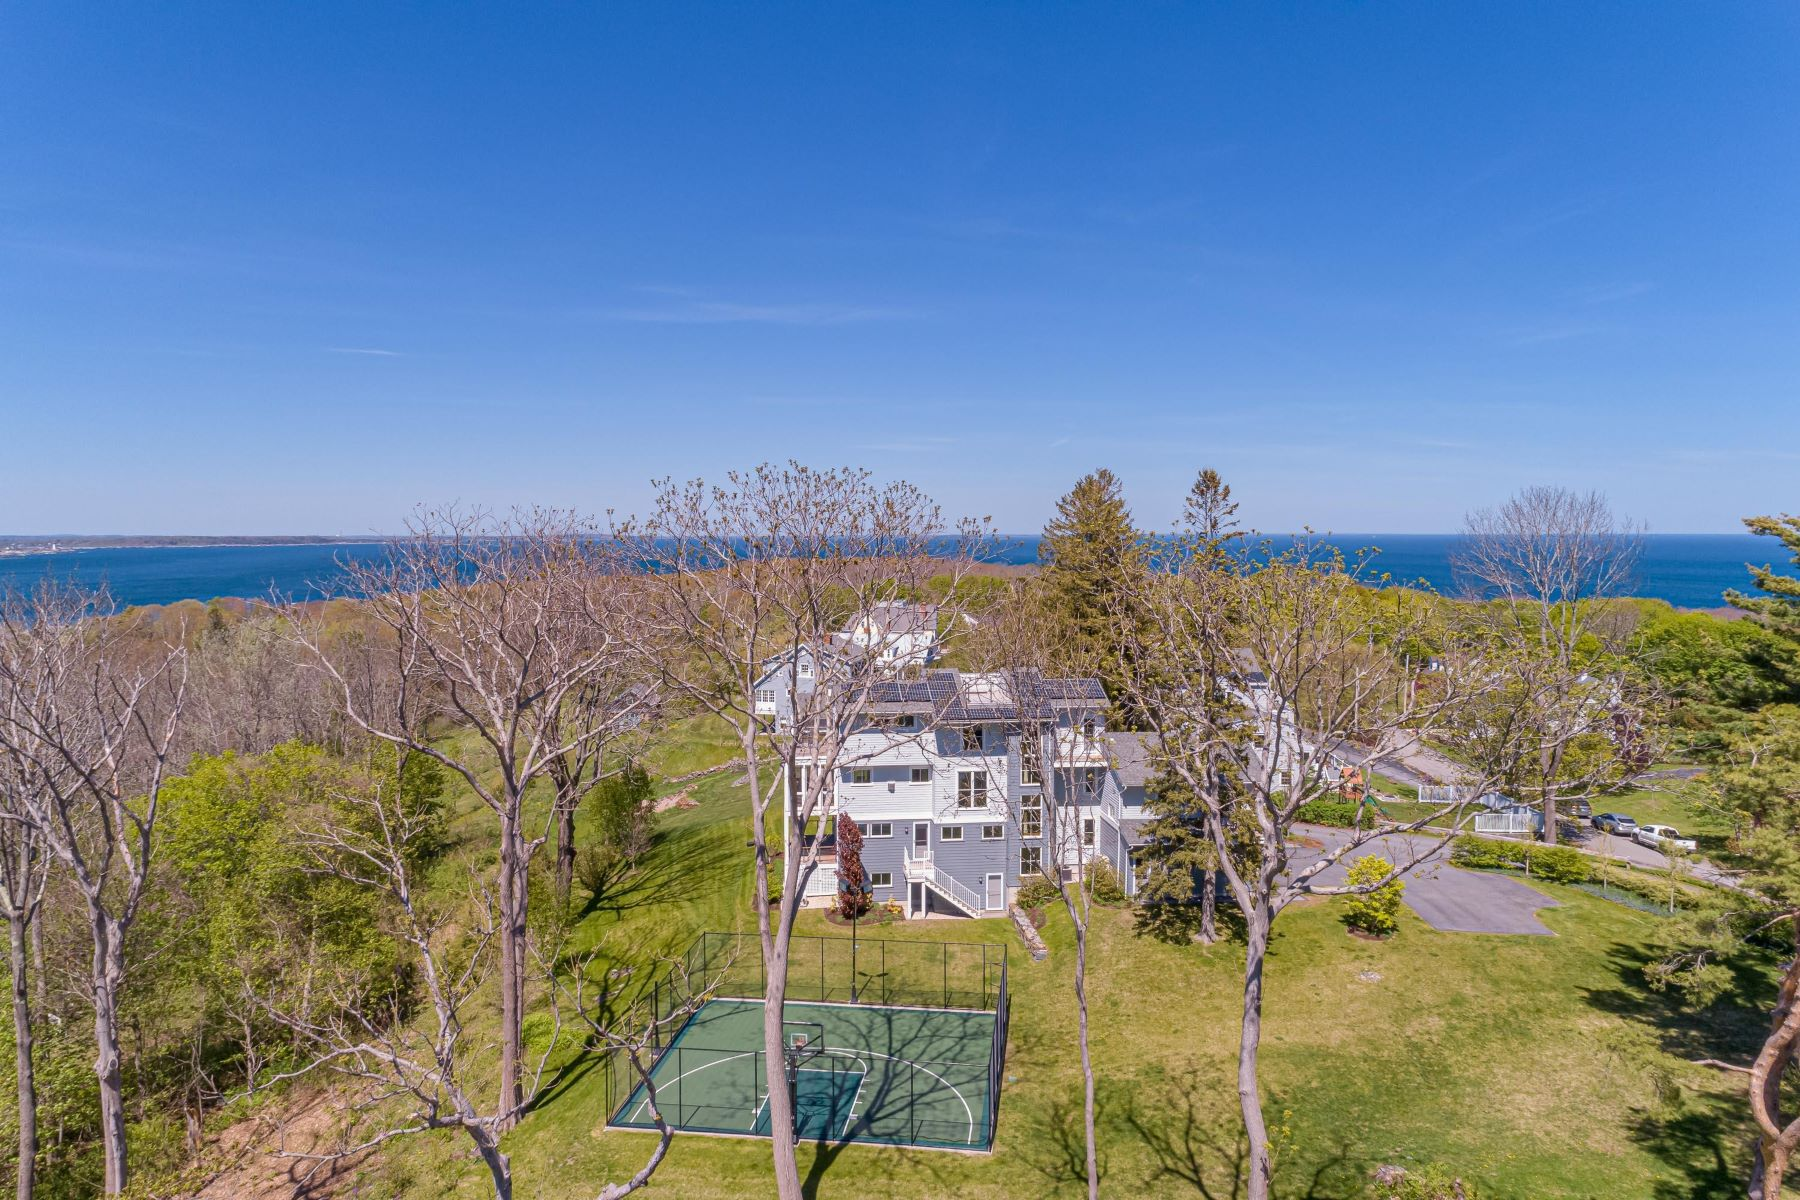 Single Family Homes for Sale at 11 Overlook Lane Cape Elizabeth, Maine 04107 United States